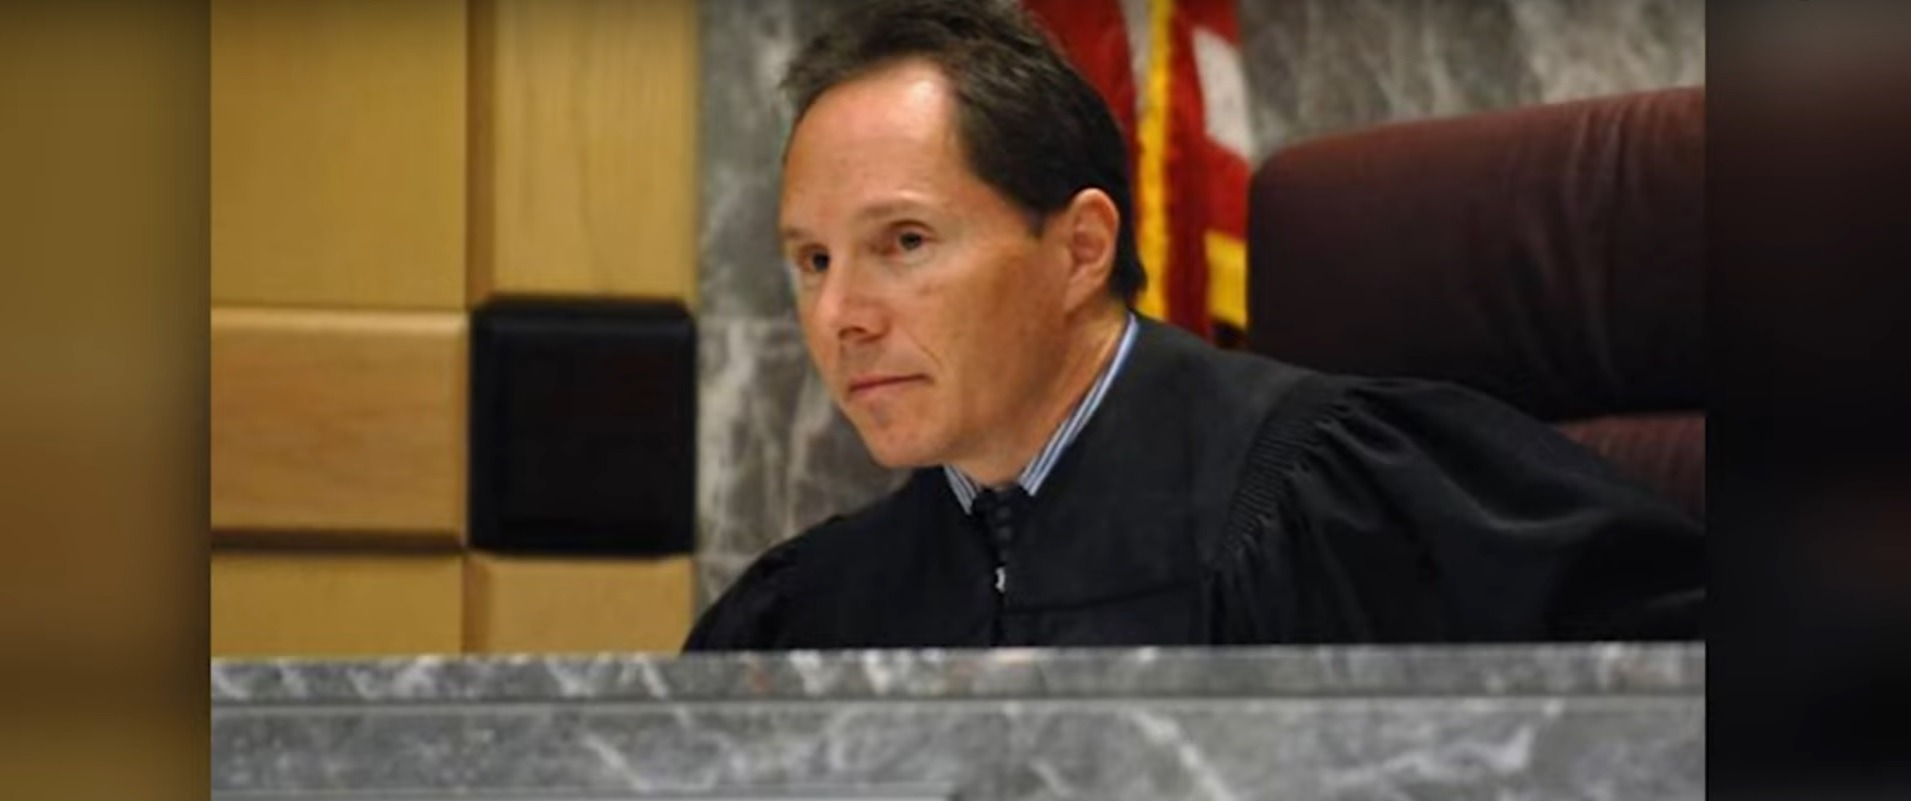 LISTEN: Judge Rips Kids Away From Moms Who Get Caught Not Wearing Masks - National File